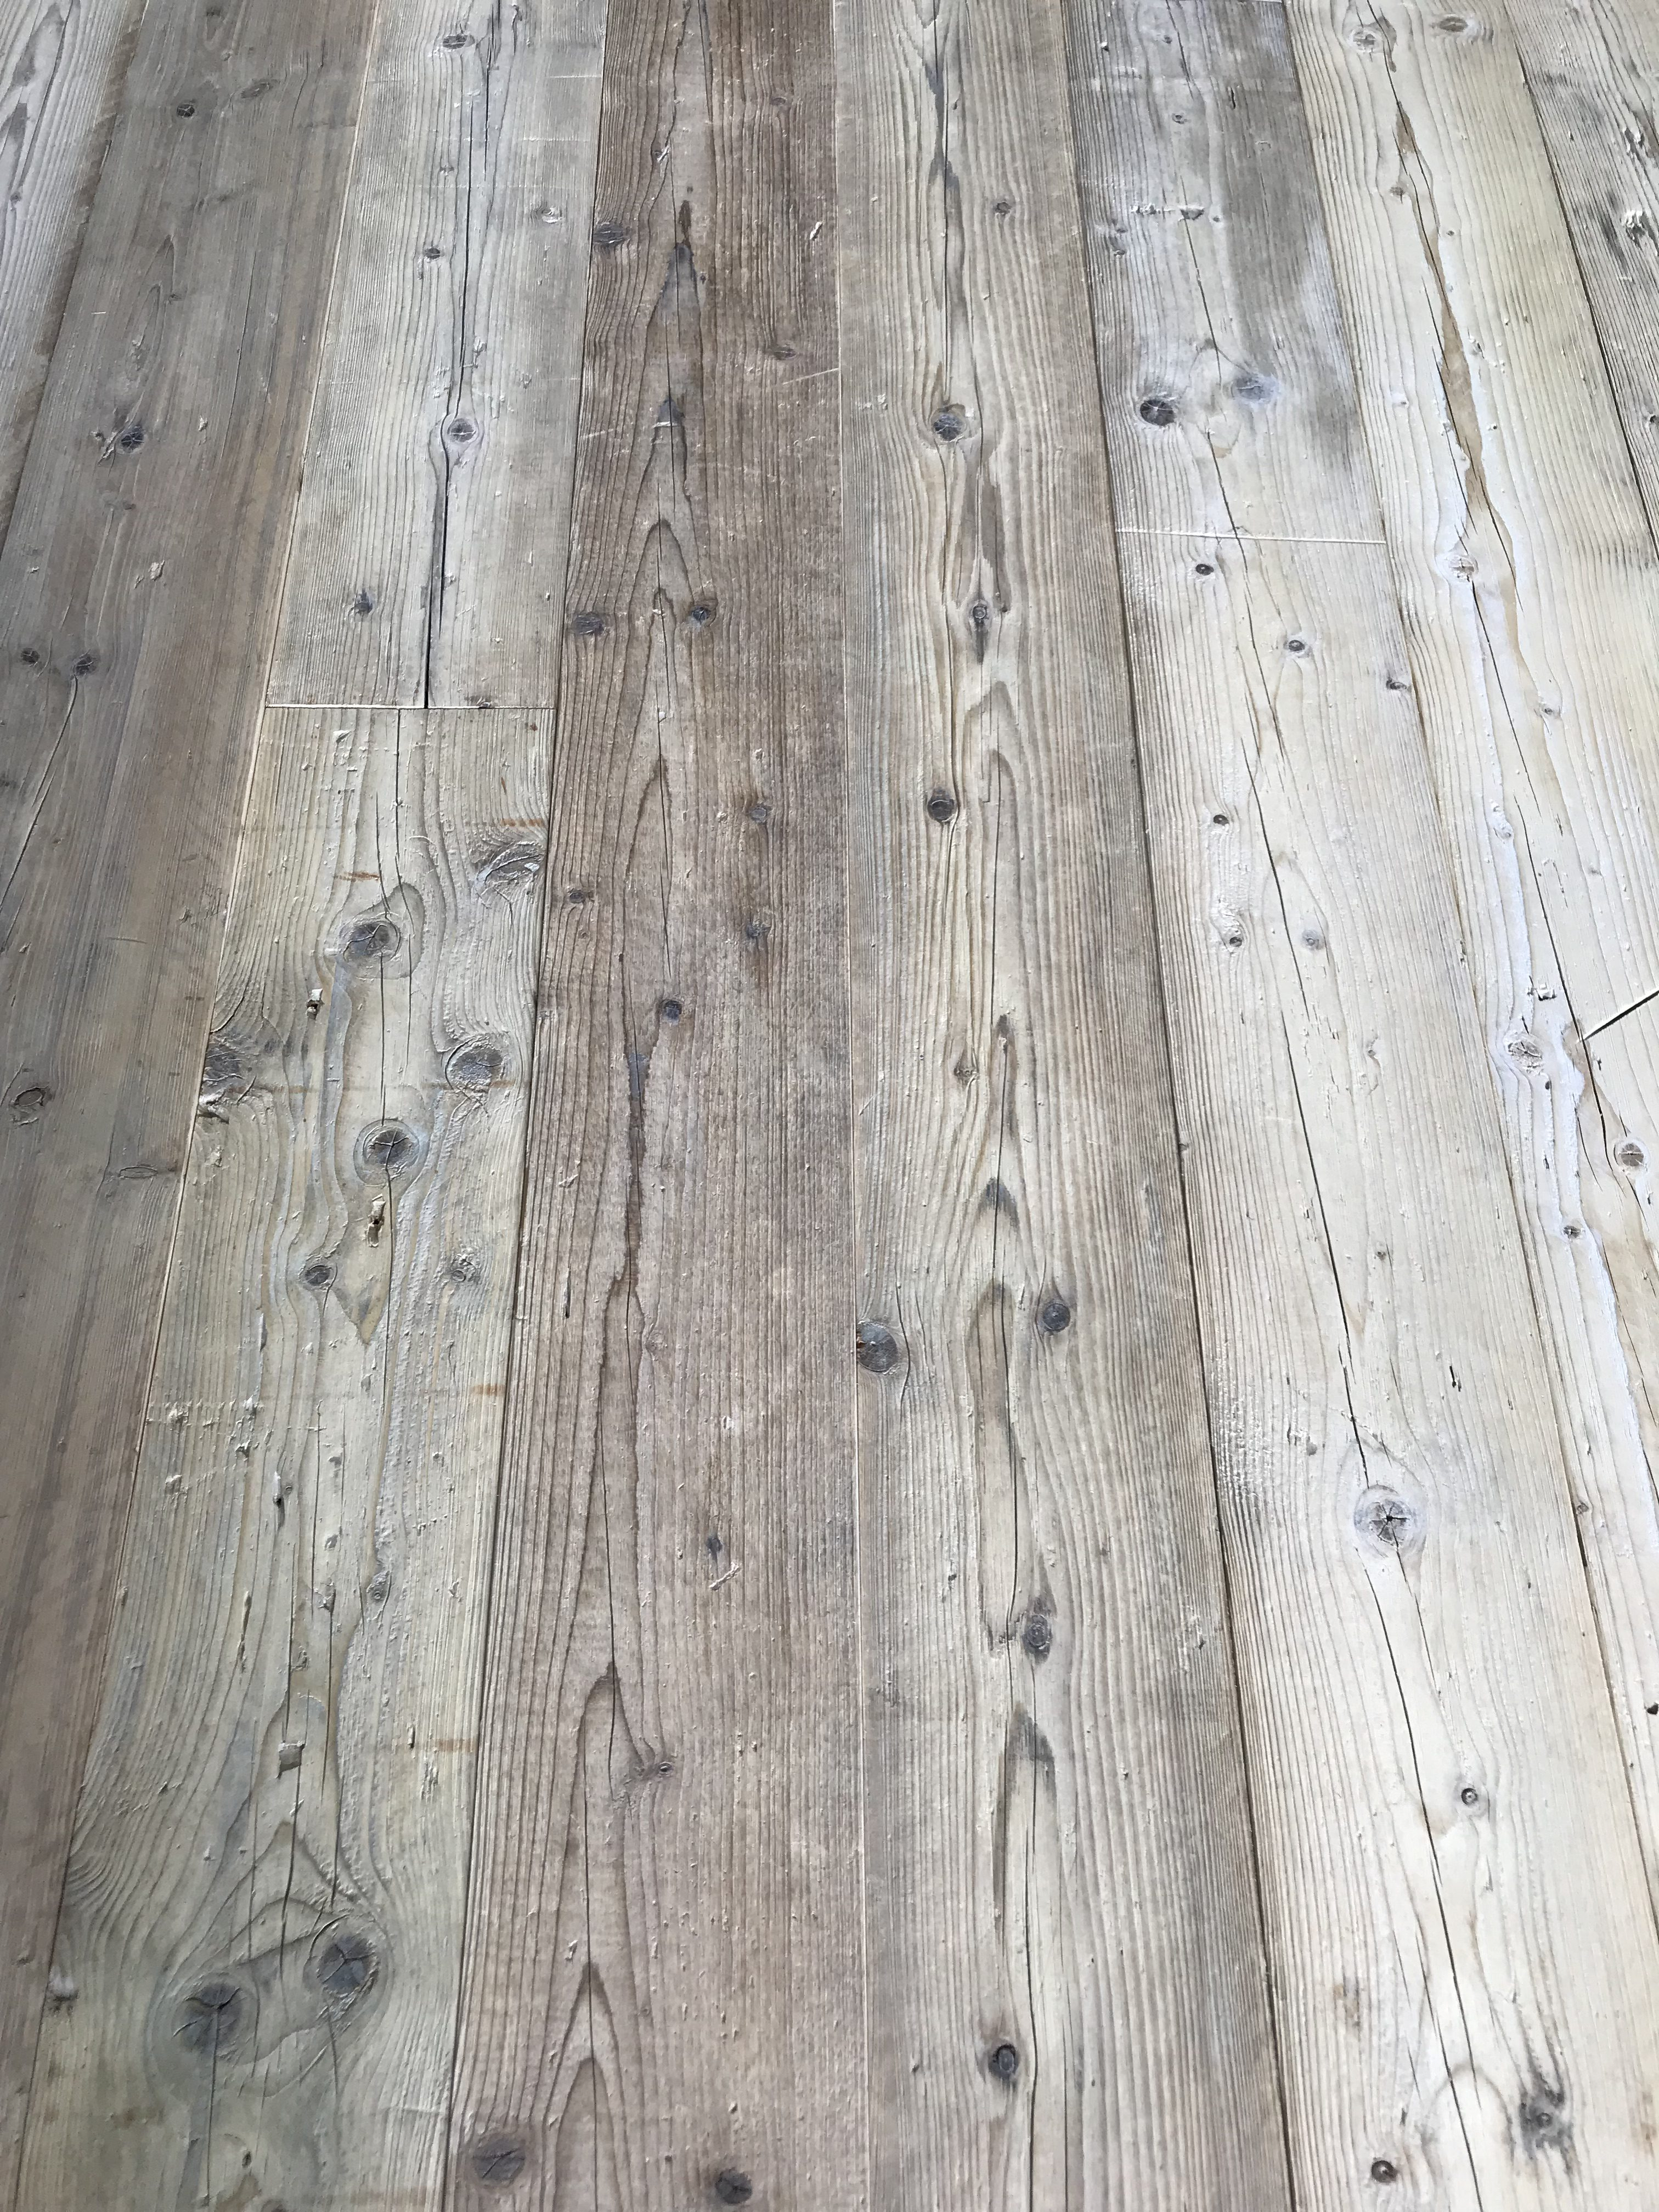 About Genuine Reclaimed Victorian Pine Floorboards